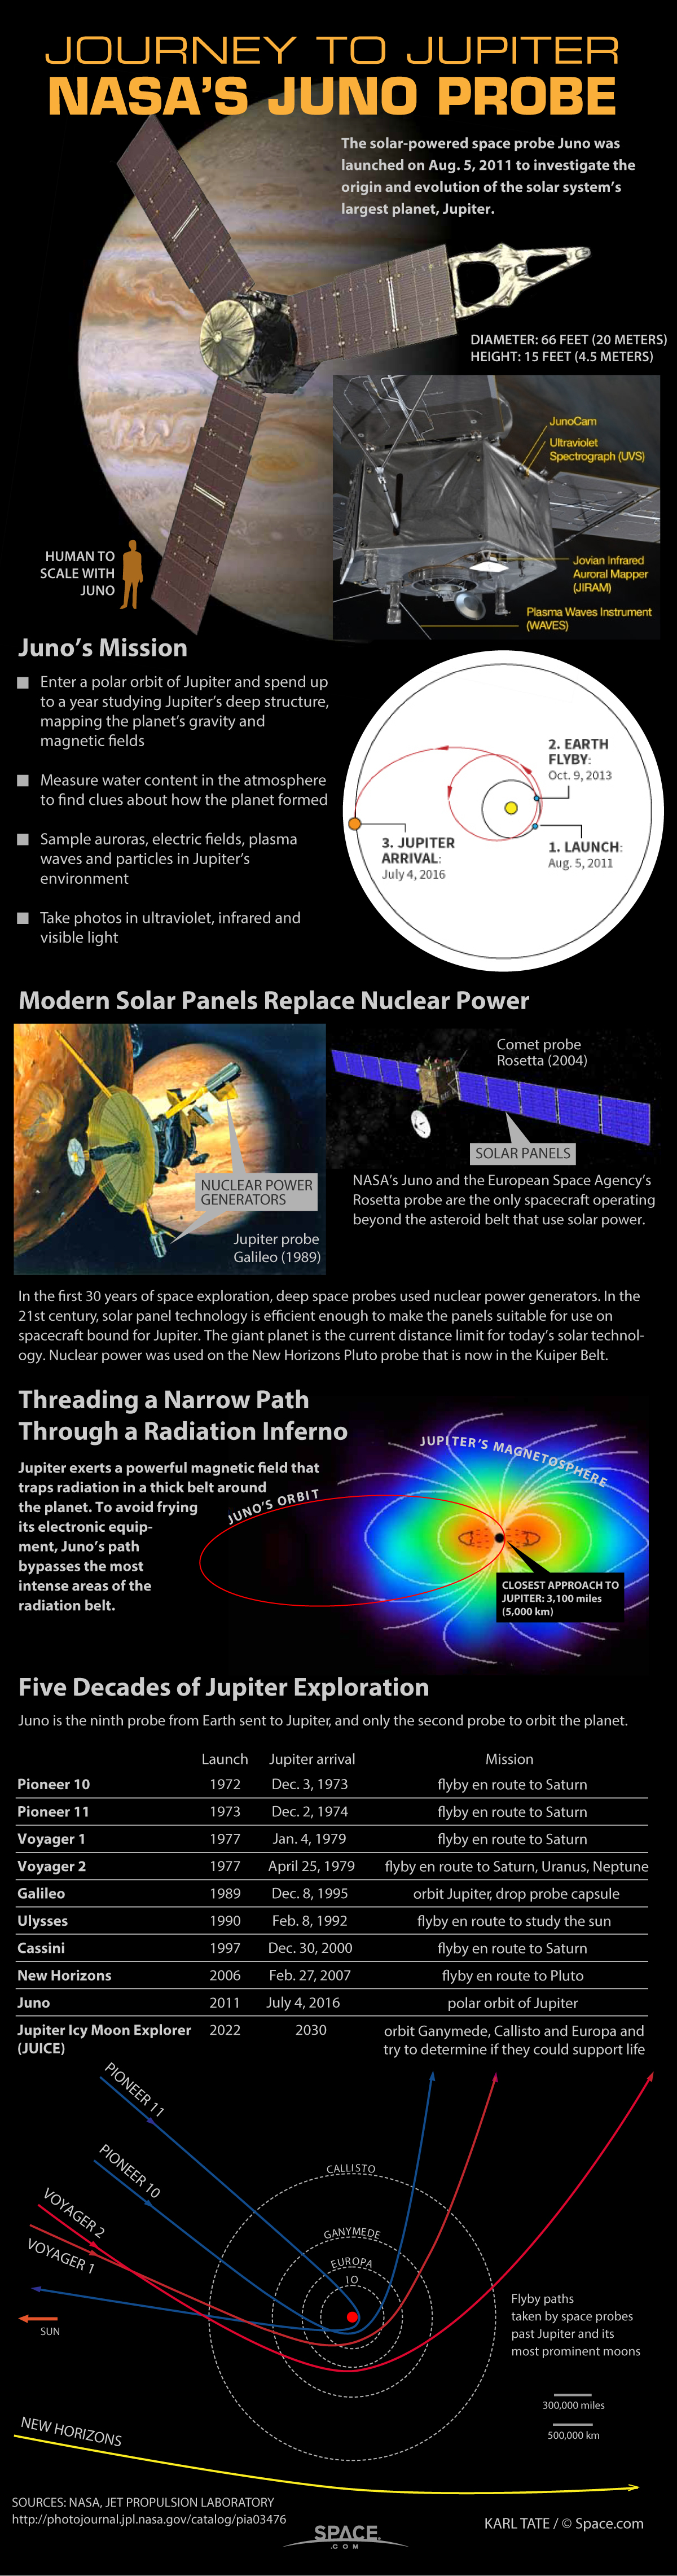 How NASA's Juno Mission to Jupiter Works (Infographic)